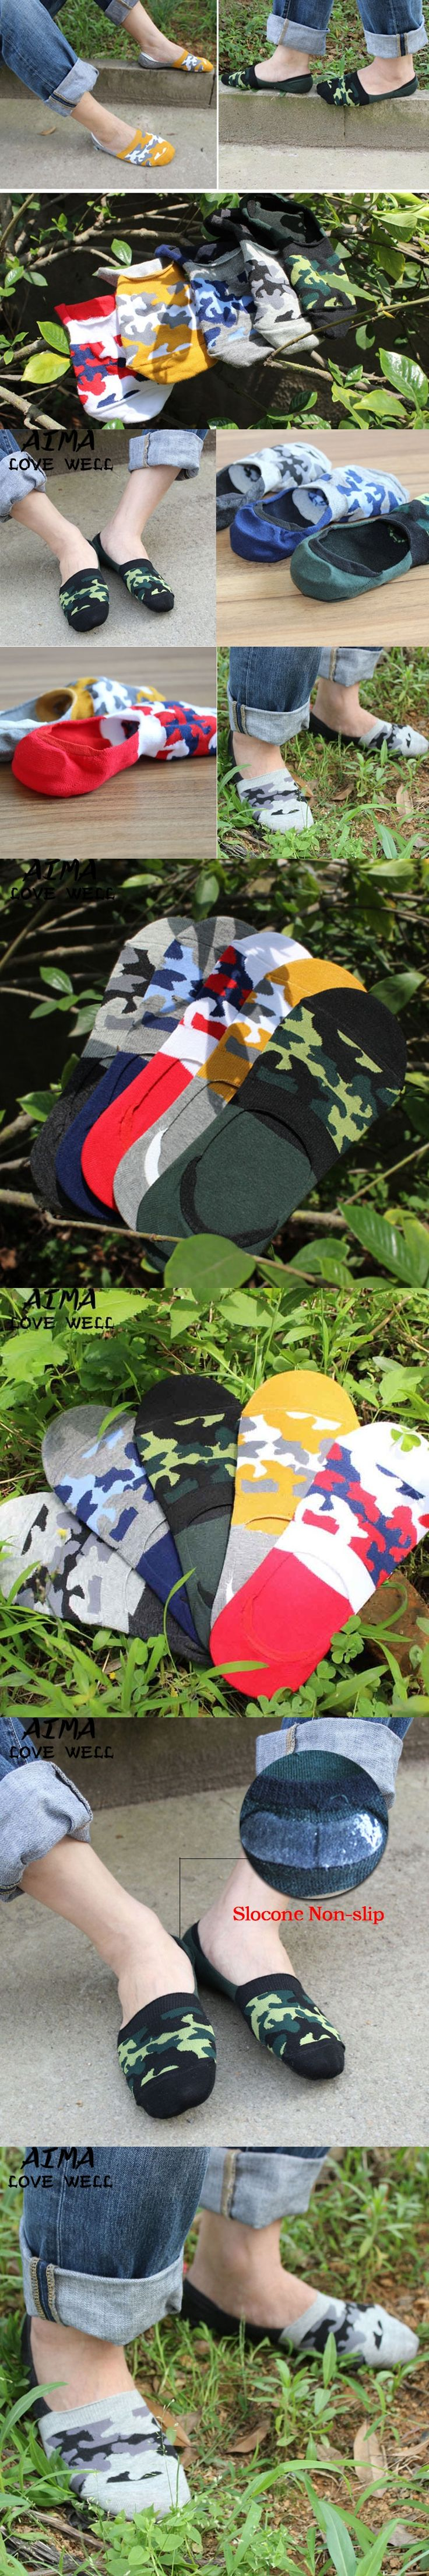 Men Cotton Casual Mixed Colors Camouflage Printed Fashion Short Socks Spring Summer Men Invisible Socks For Men 5pairs/lot